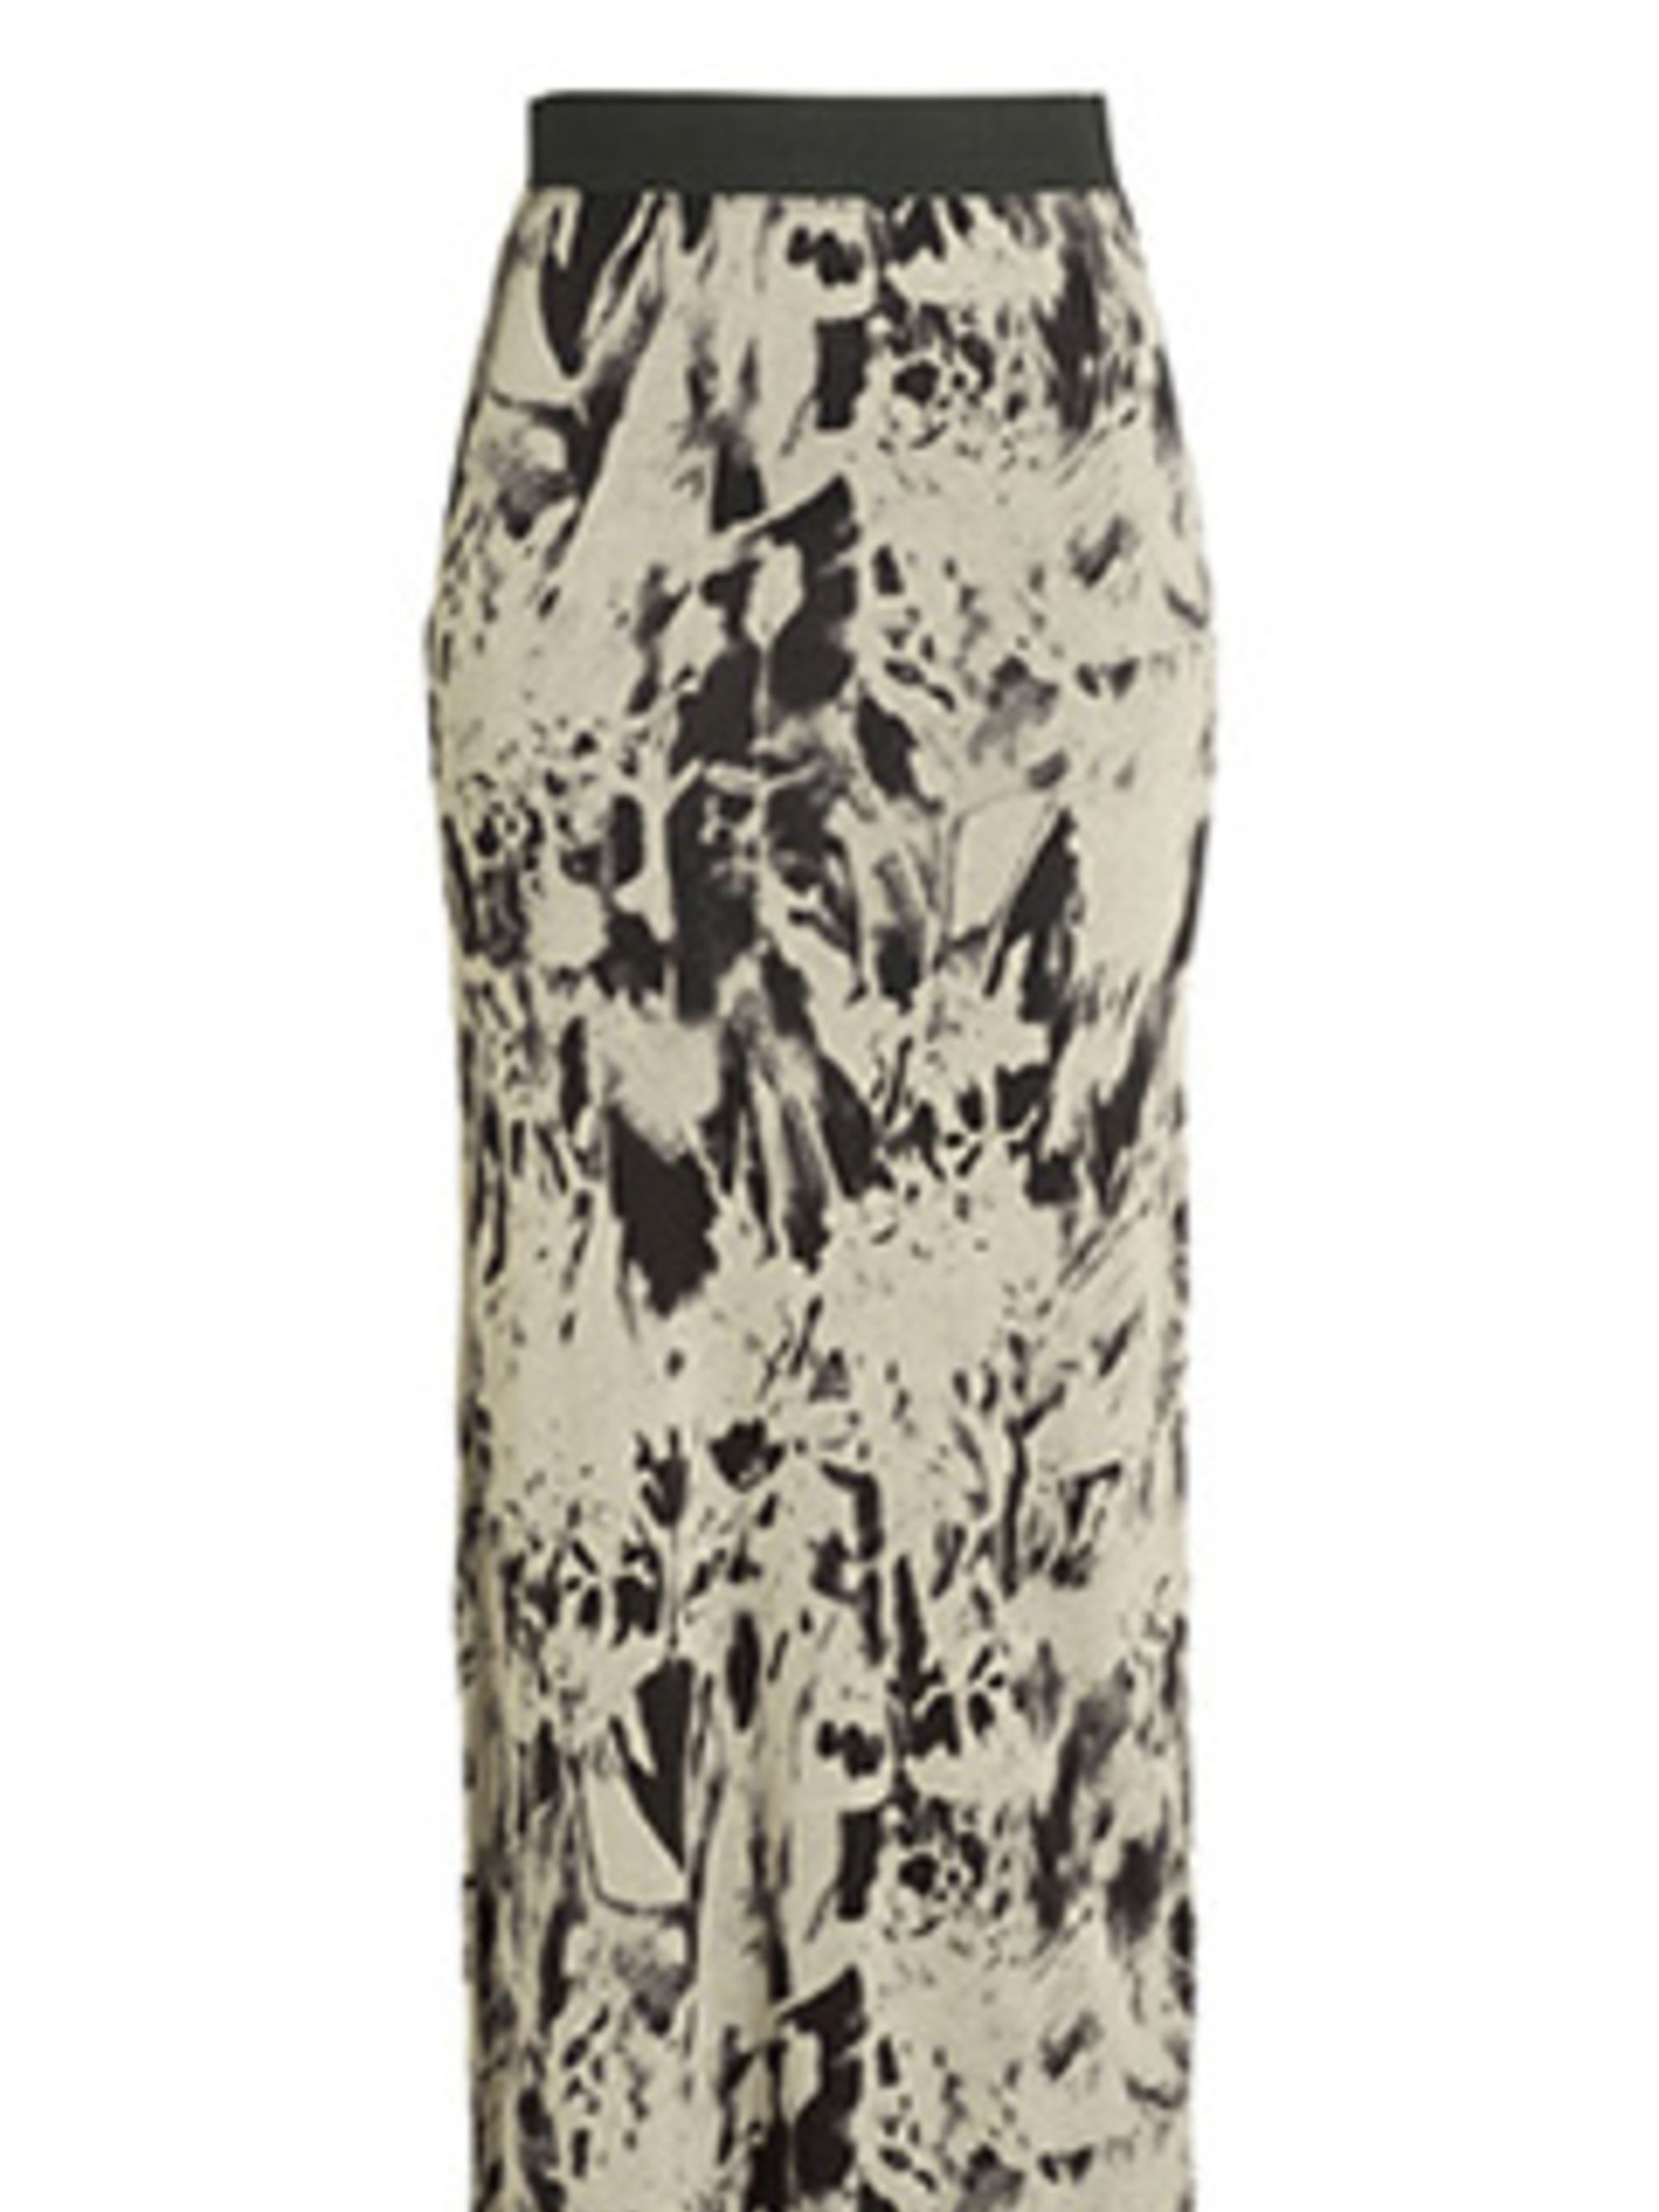 "<p>Take note, hemlines are riding low for summer. Channel the 90s with a simple tee, denim jacket and this maxi skirt. </p><p>Skirt, £24.99 by <a href=""http://xml.riverisland.com/flash/content.php"">River Island</a></p>"